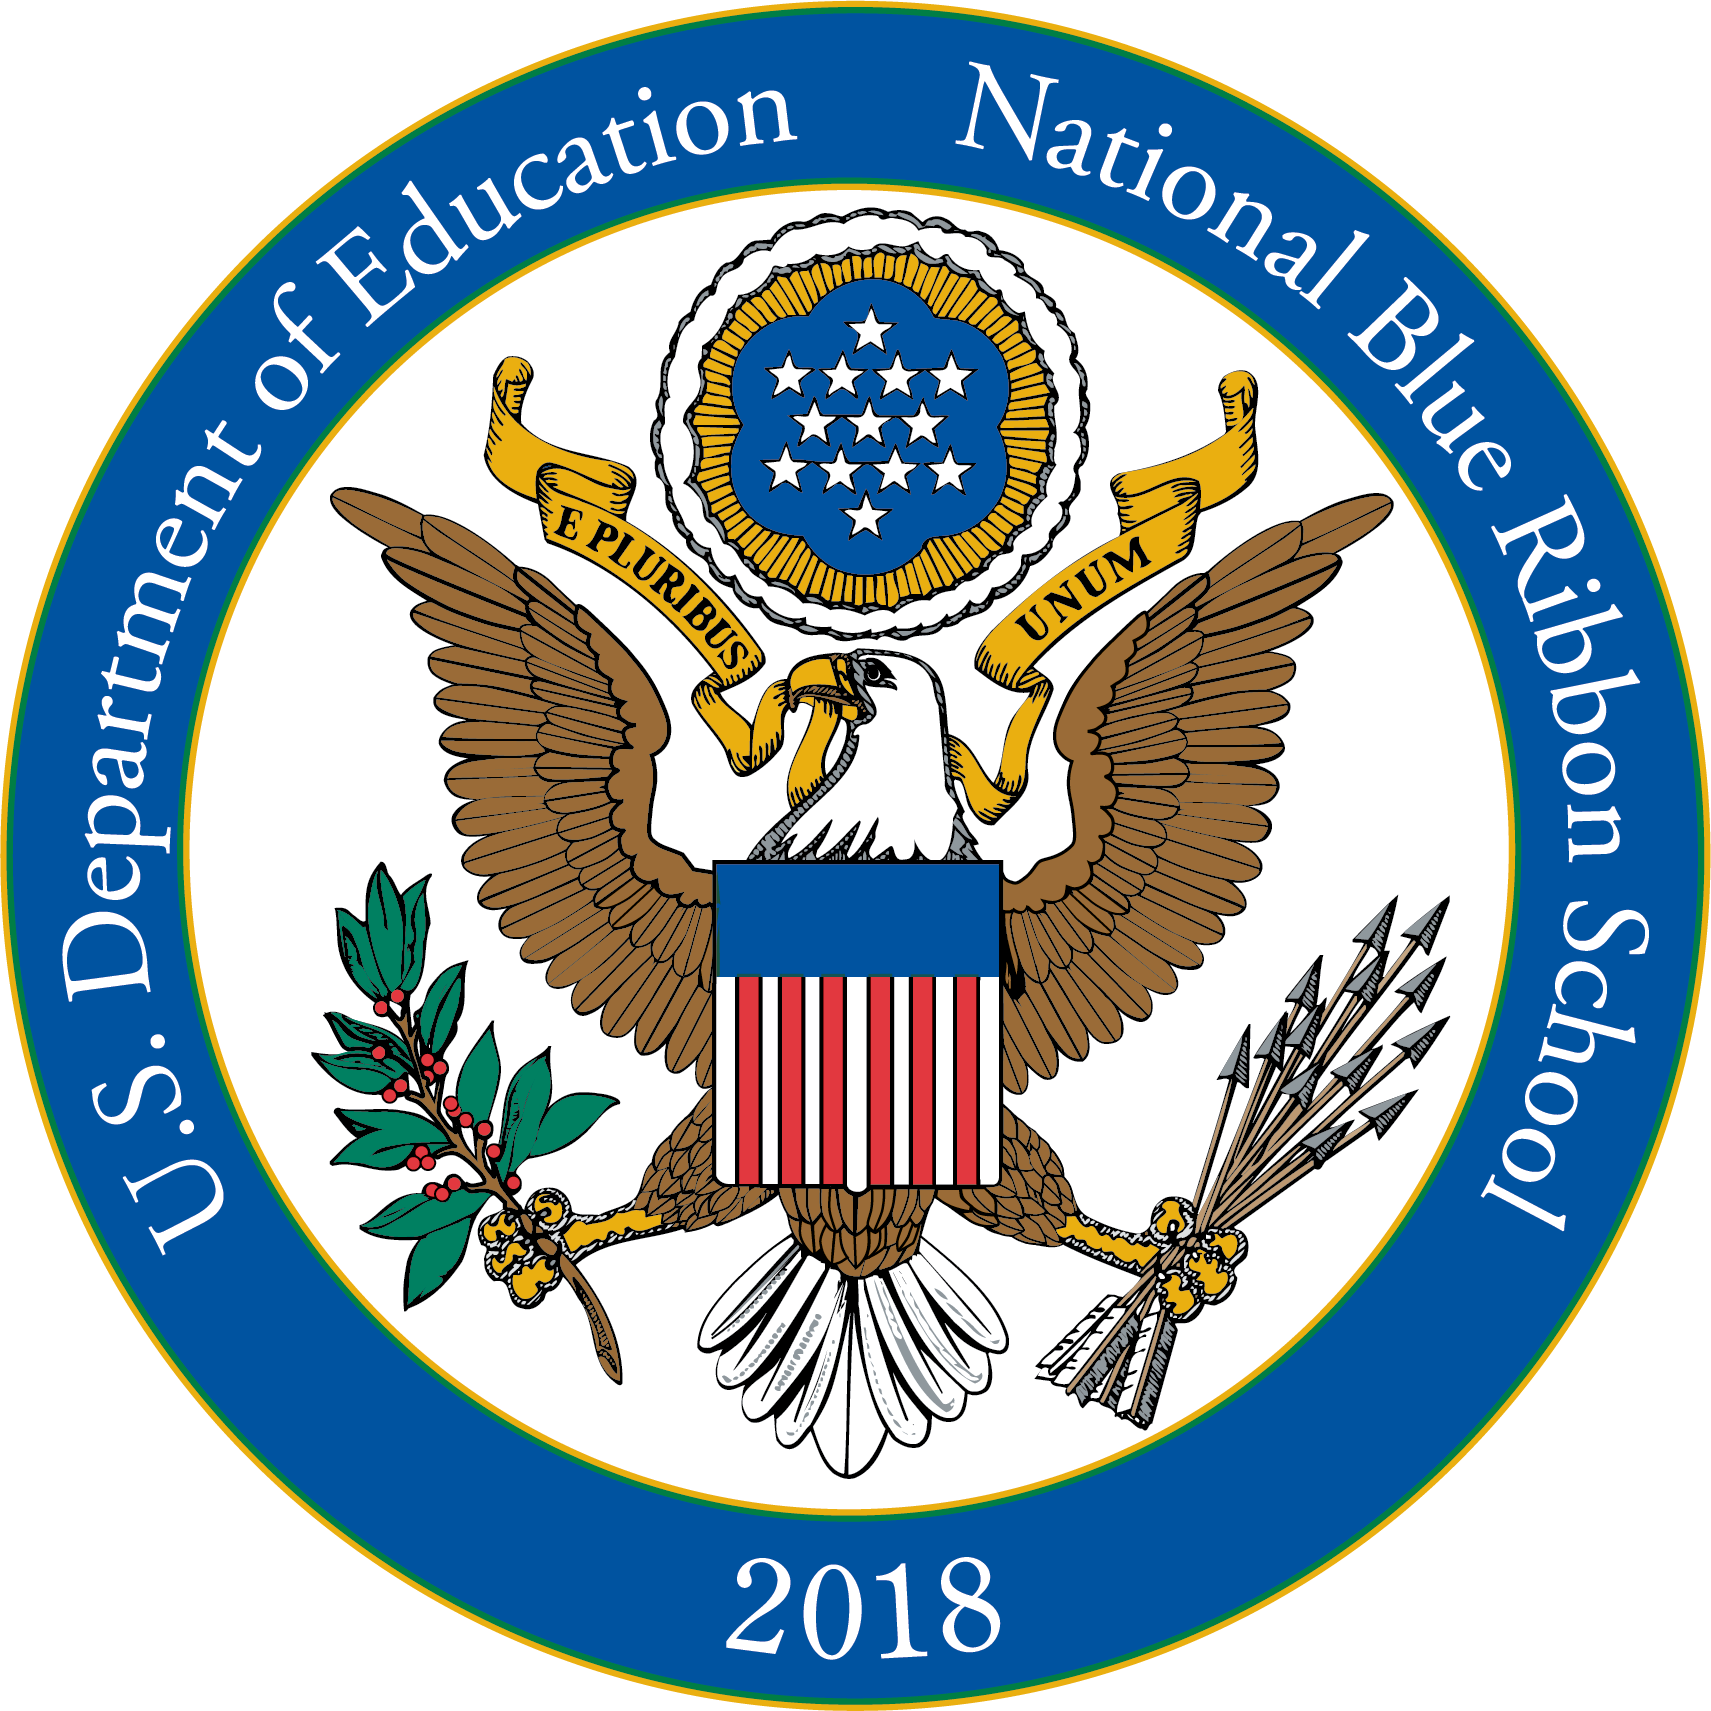 2018 National Blue Ribbon School Seal